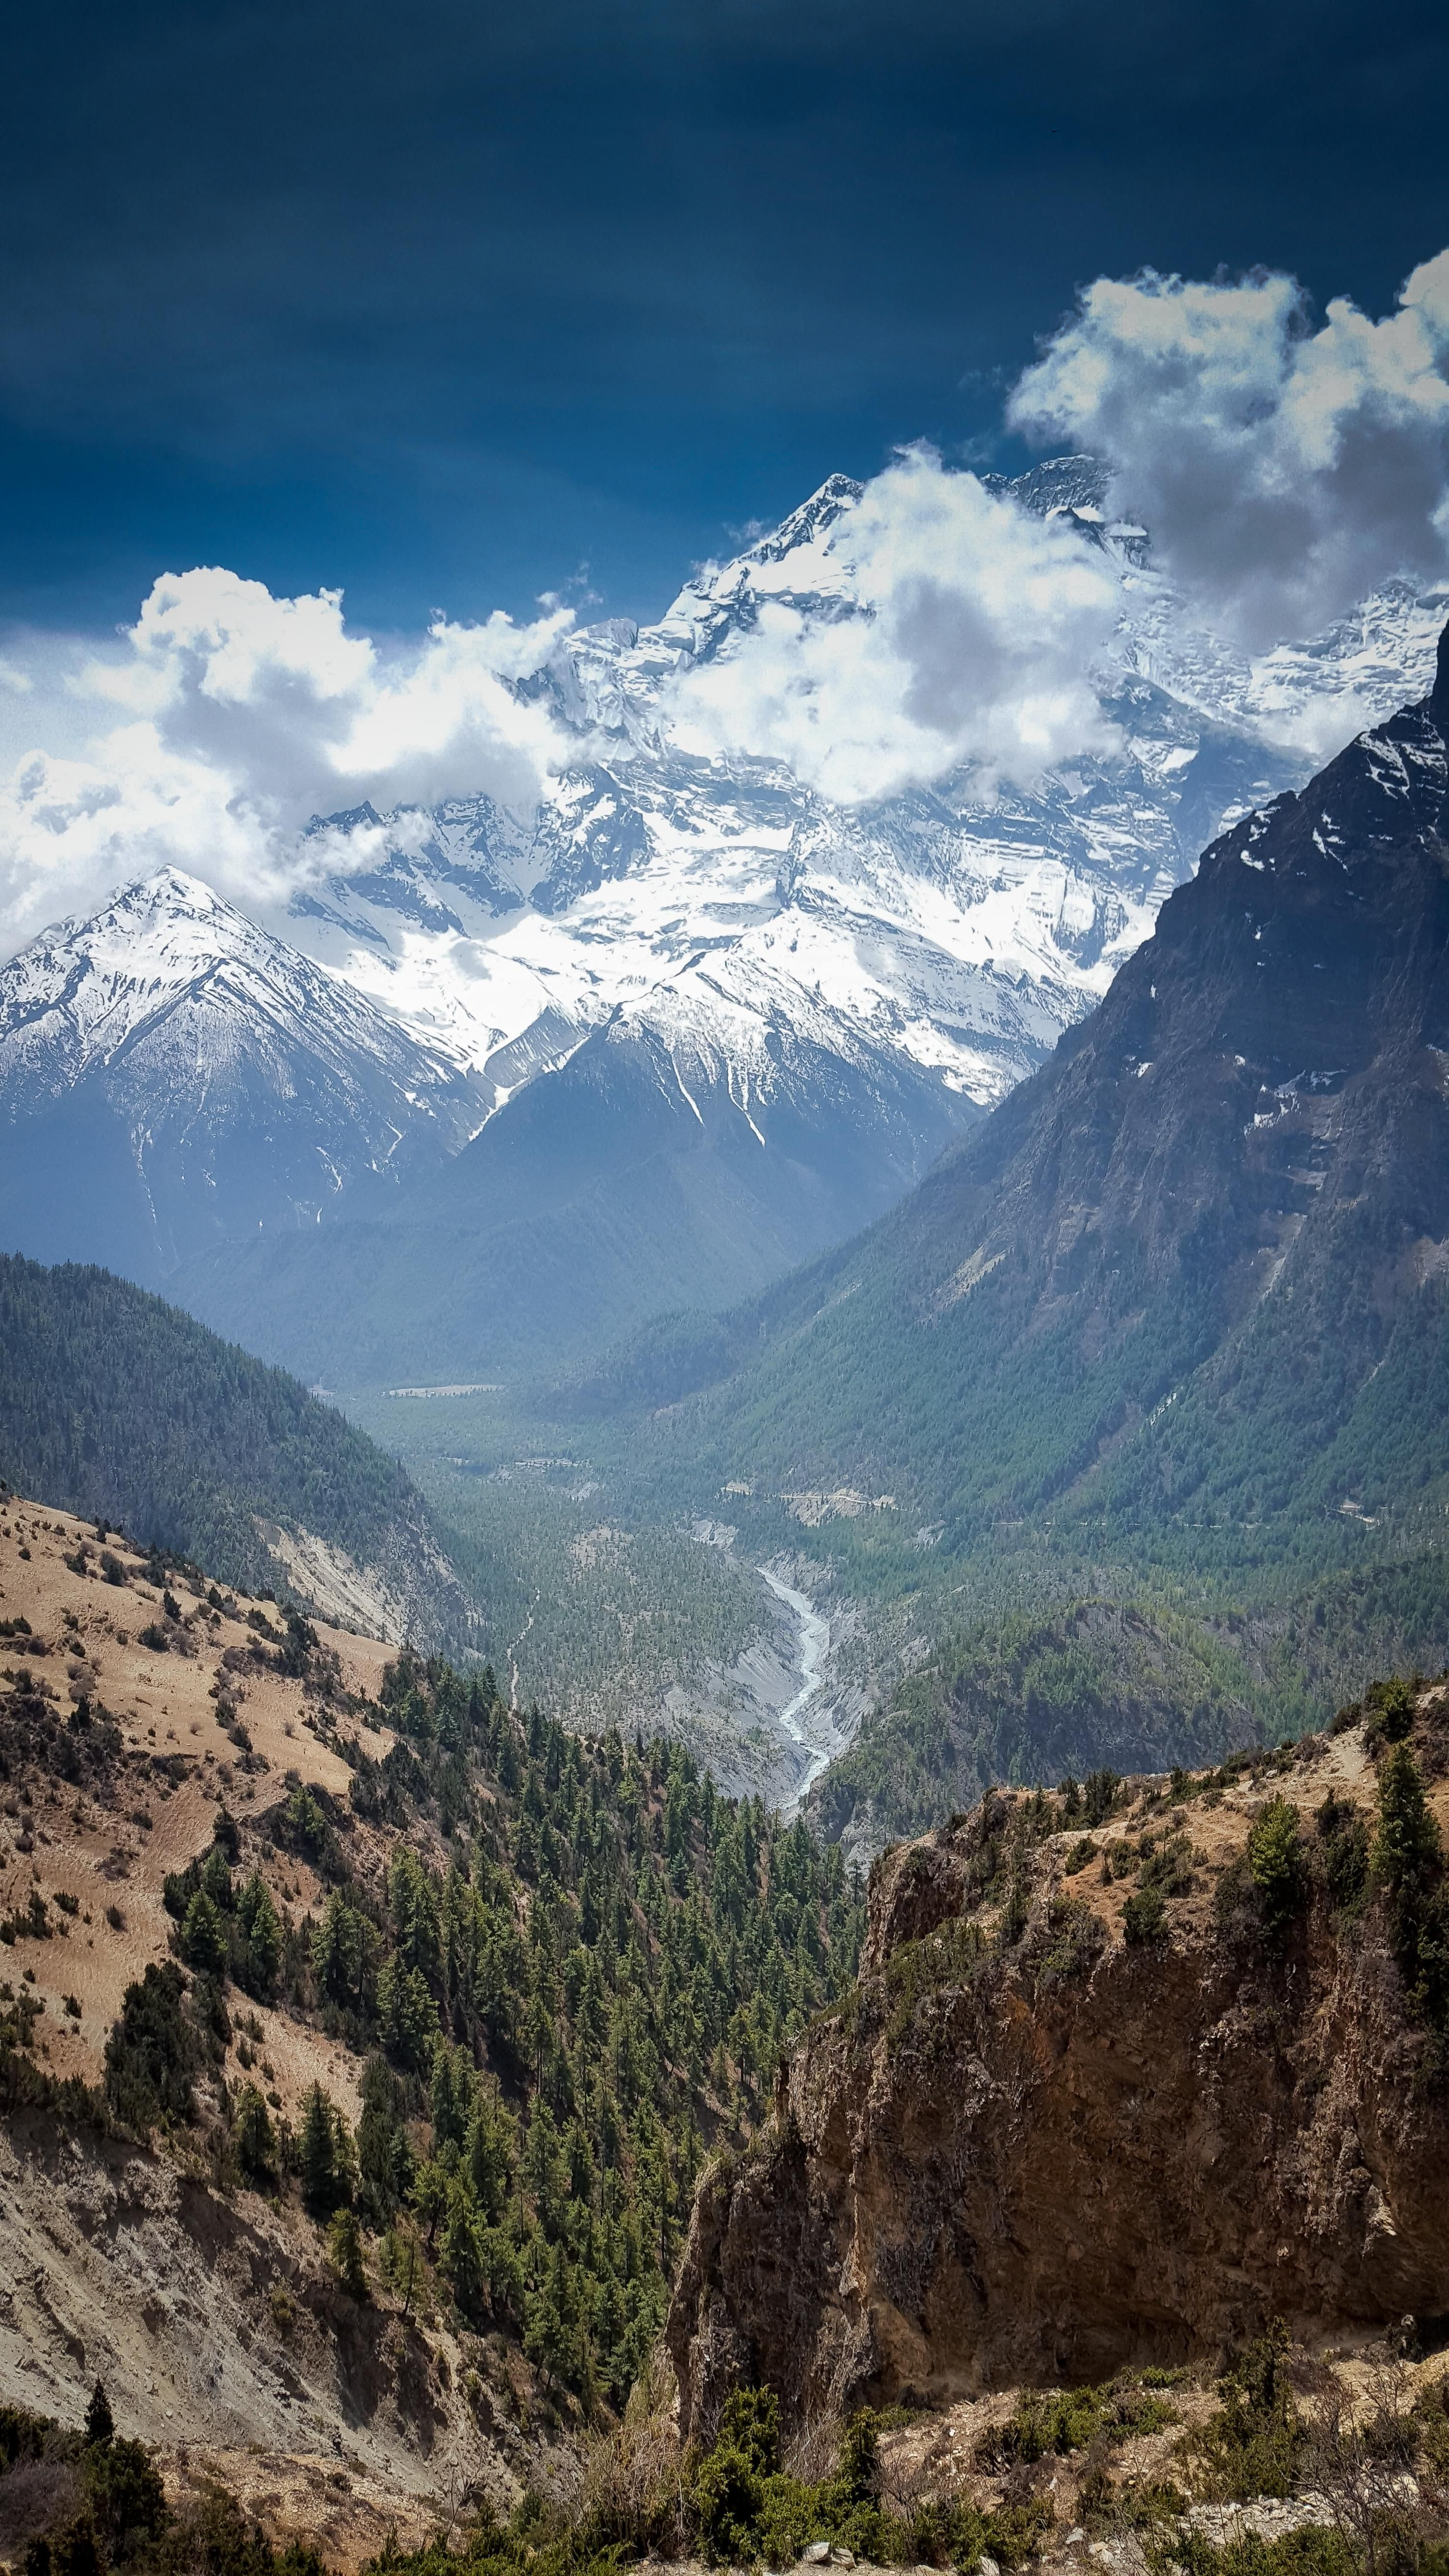 Valley In The Annapurna Mountain Range Nepal Oc 2988x5312 Landscapes Nature Beau Mountain Landscape Photography Mountain Landscape Mountain Photography